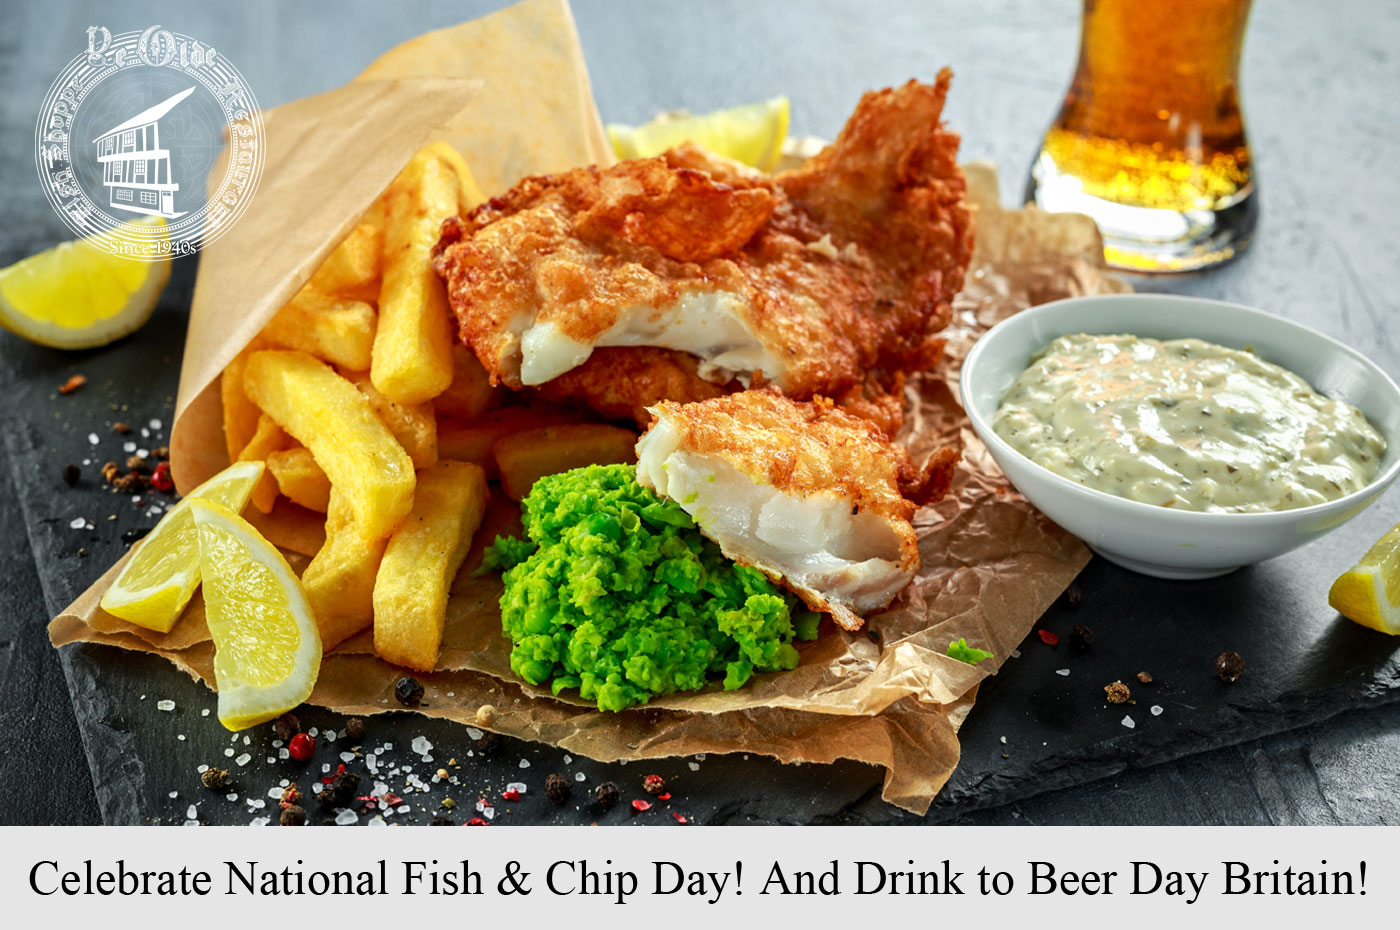 Celebrate National Fish & Chip Day!